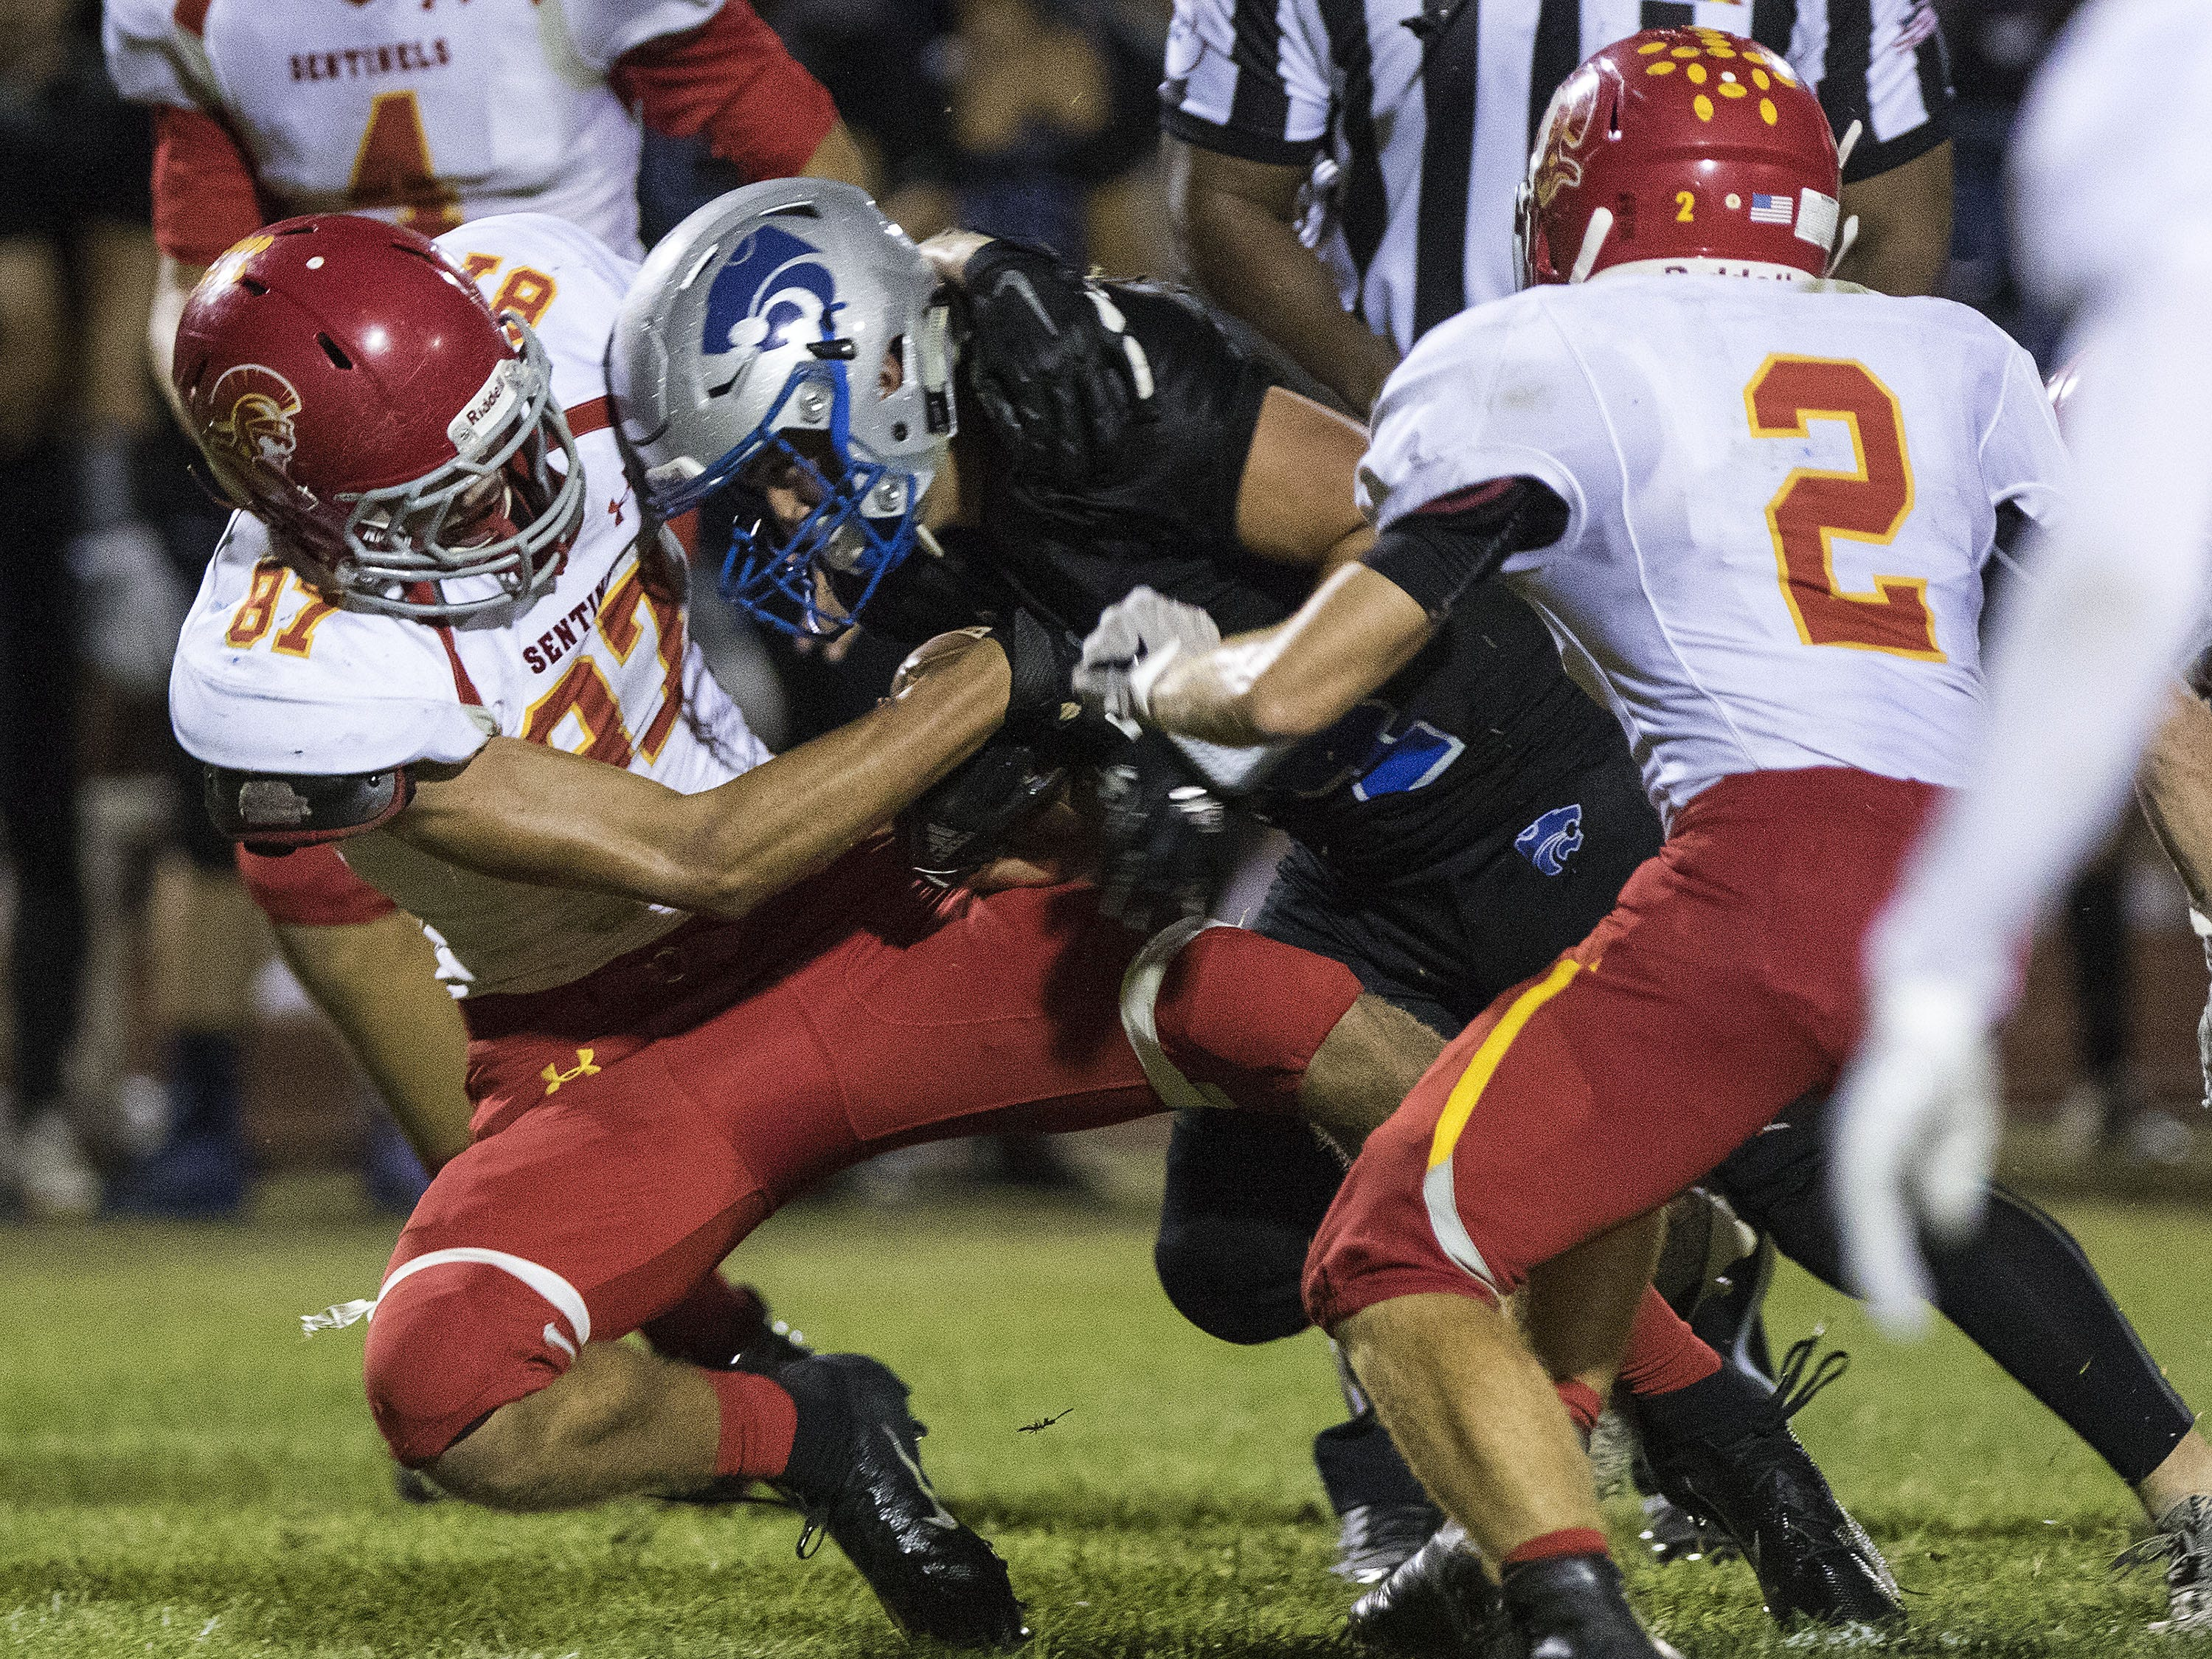 Seton's Josh Hansell wrestles Mesquite's Chandler Coleman down to the ground during their game in Gilbert Friday, Sept. 21, 2018. #azhsfb